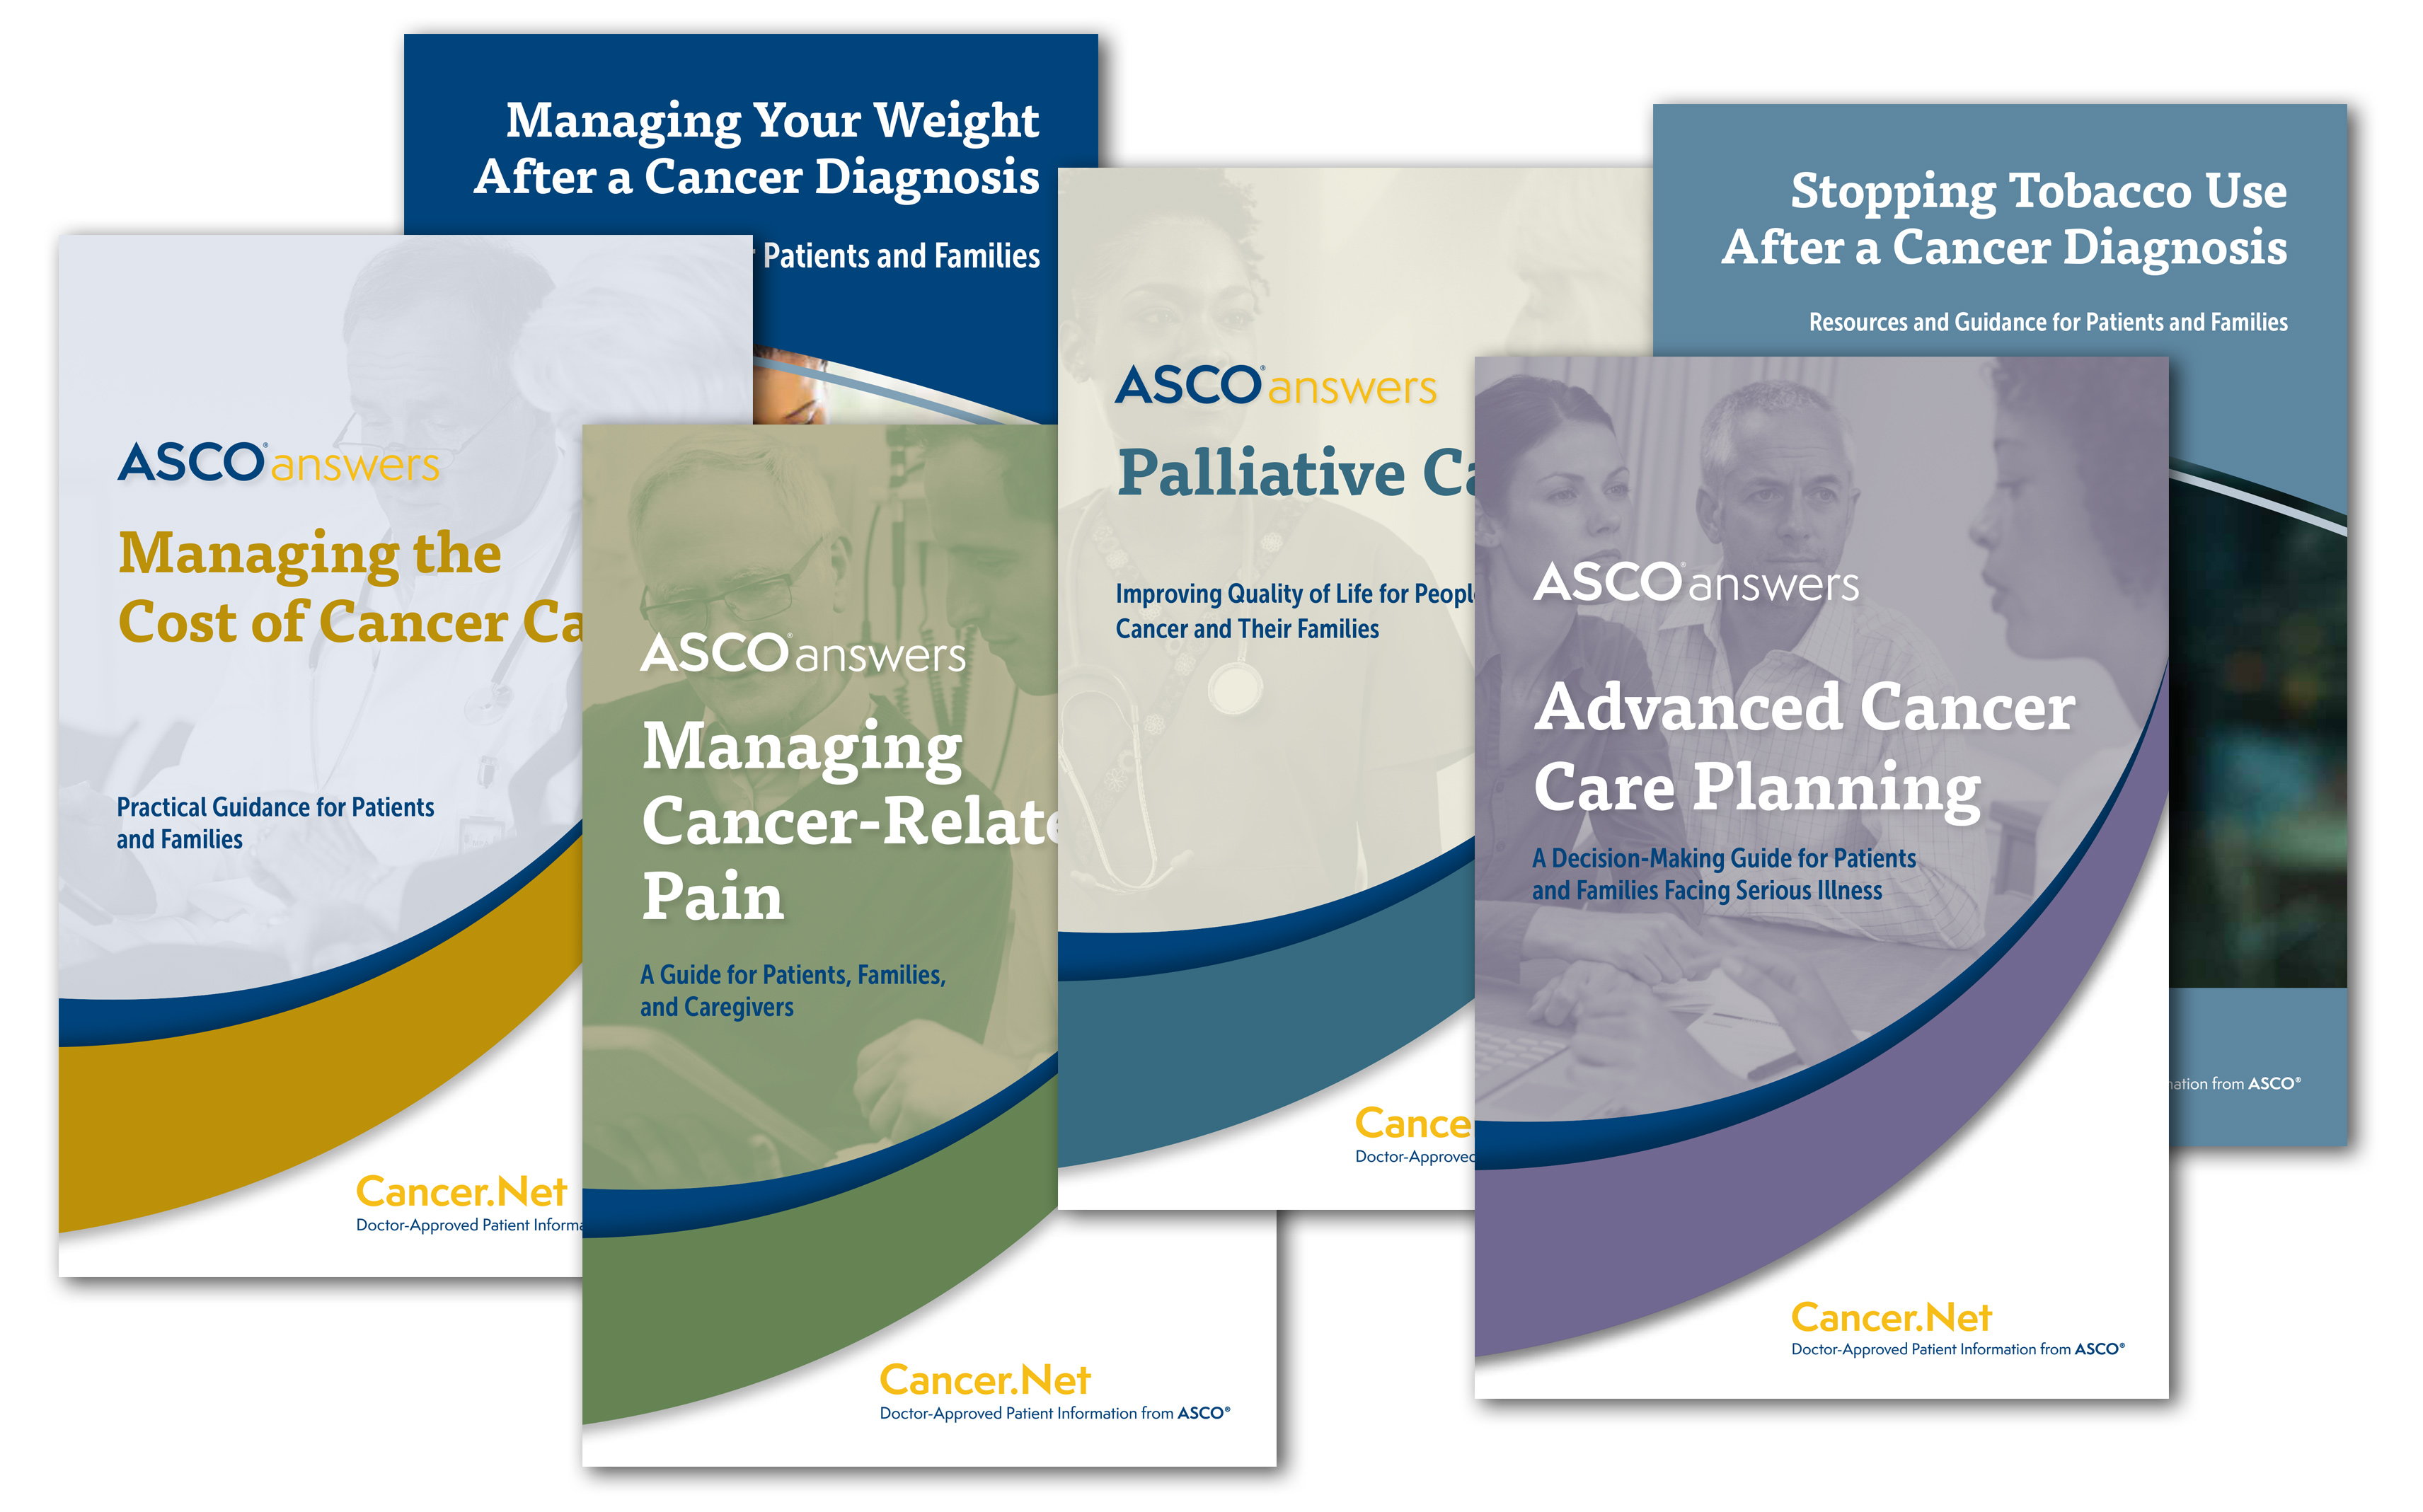 Stack of booklets, including Managing Your Weight After a Cancer Diagnosis, Managing the Cost of Cancer Care, Managing Cancer-Related Pain, Palliative Care, Advanced Cancer Care Planning, and Stopping Tobacco Use After a Cancer Diagnosis